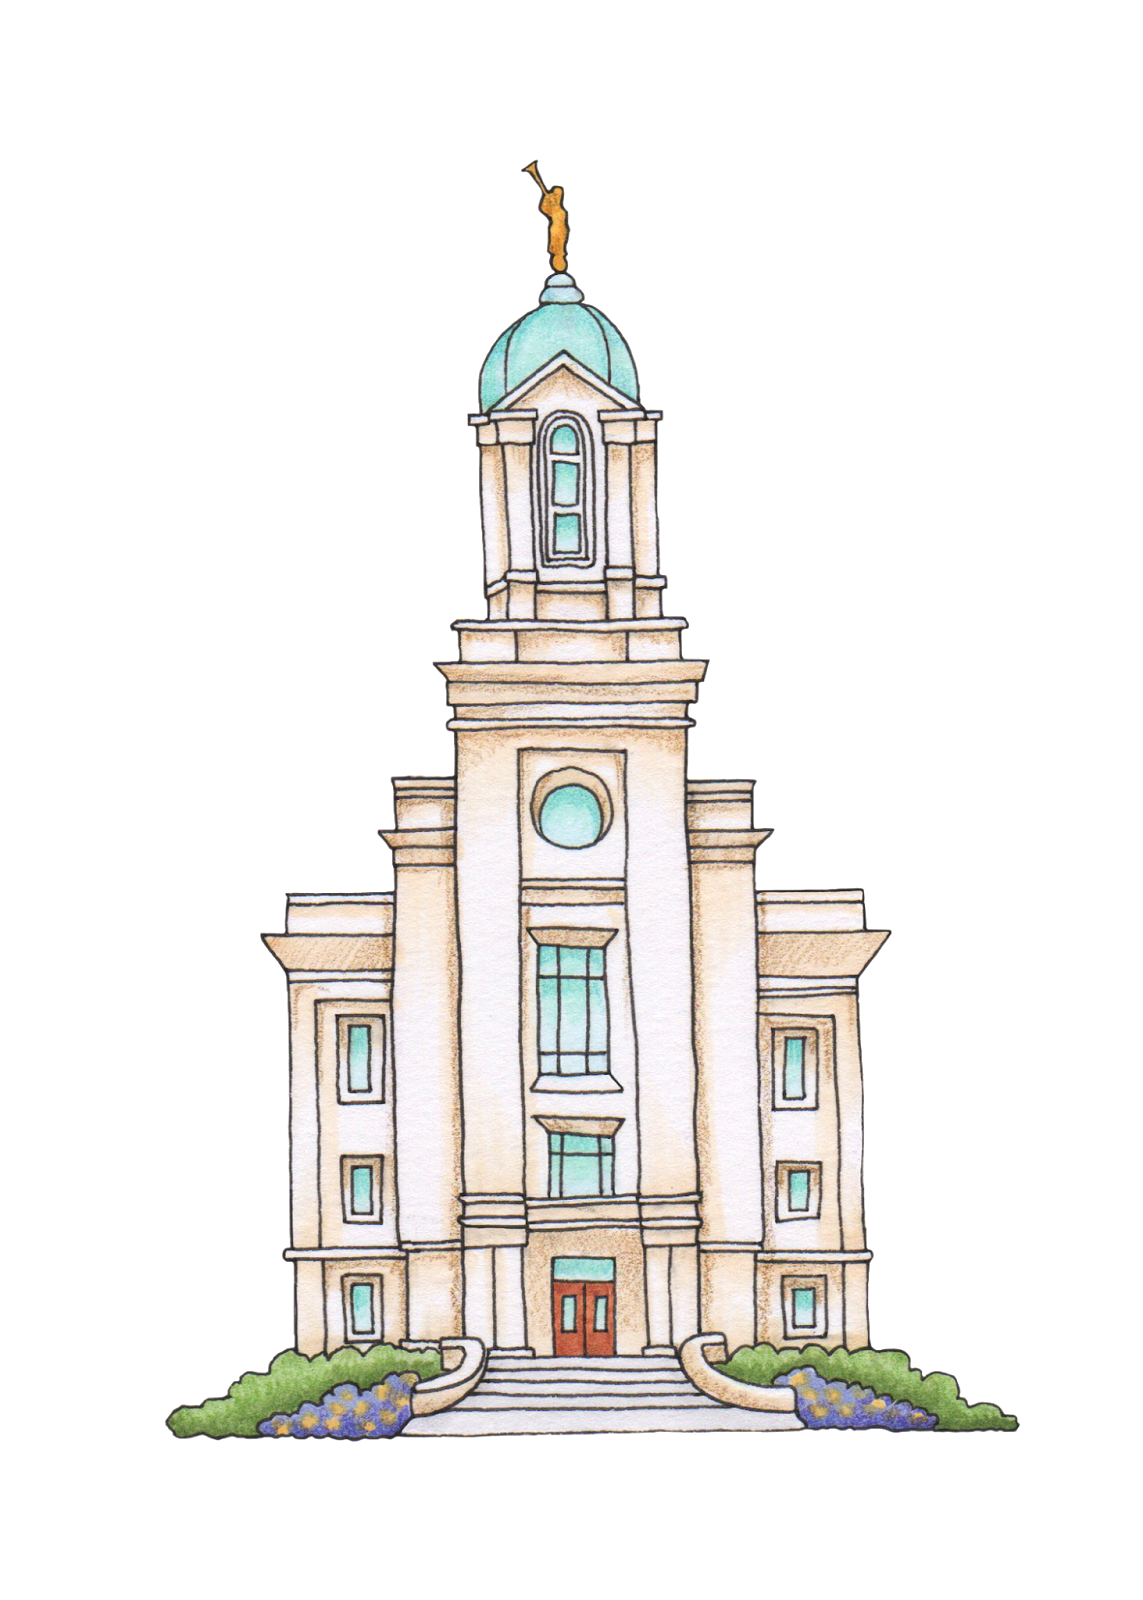 Lds church clipart clipart images gallery for free download.